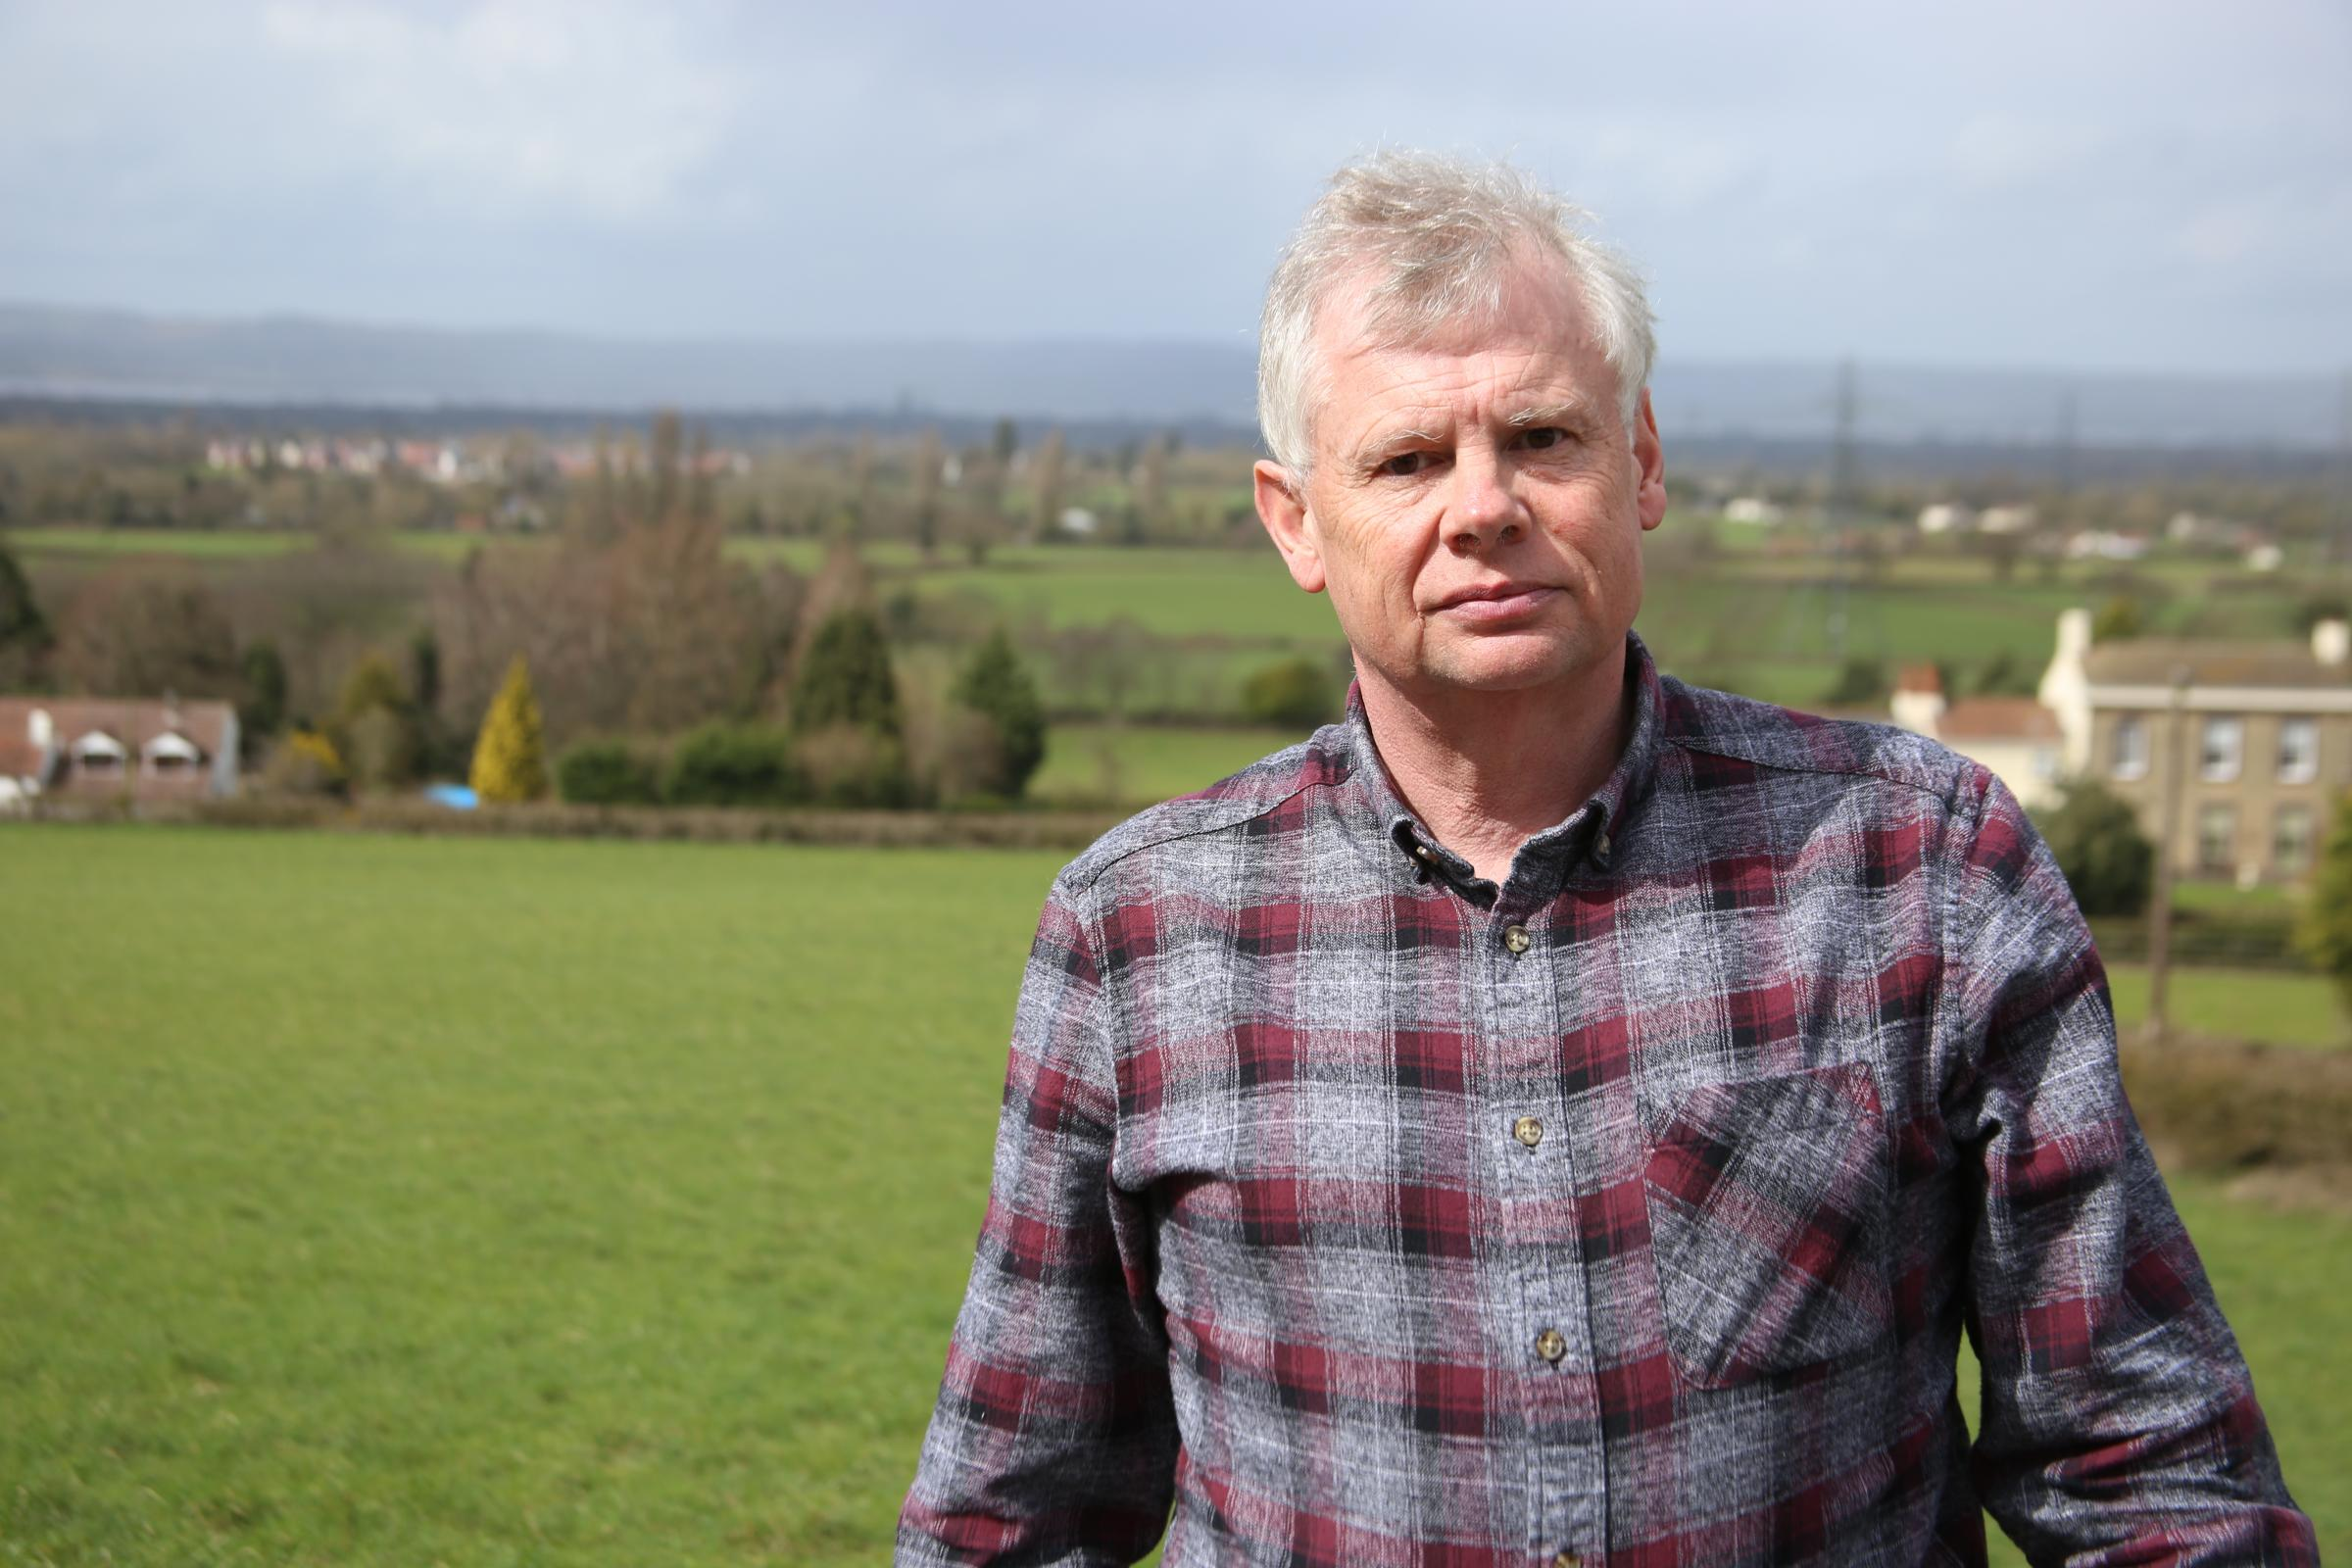 TRAPP'D co-chairman Colin Gardner in front of the proposed Buckover Garden Village site with Thornbury in the background